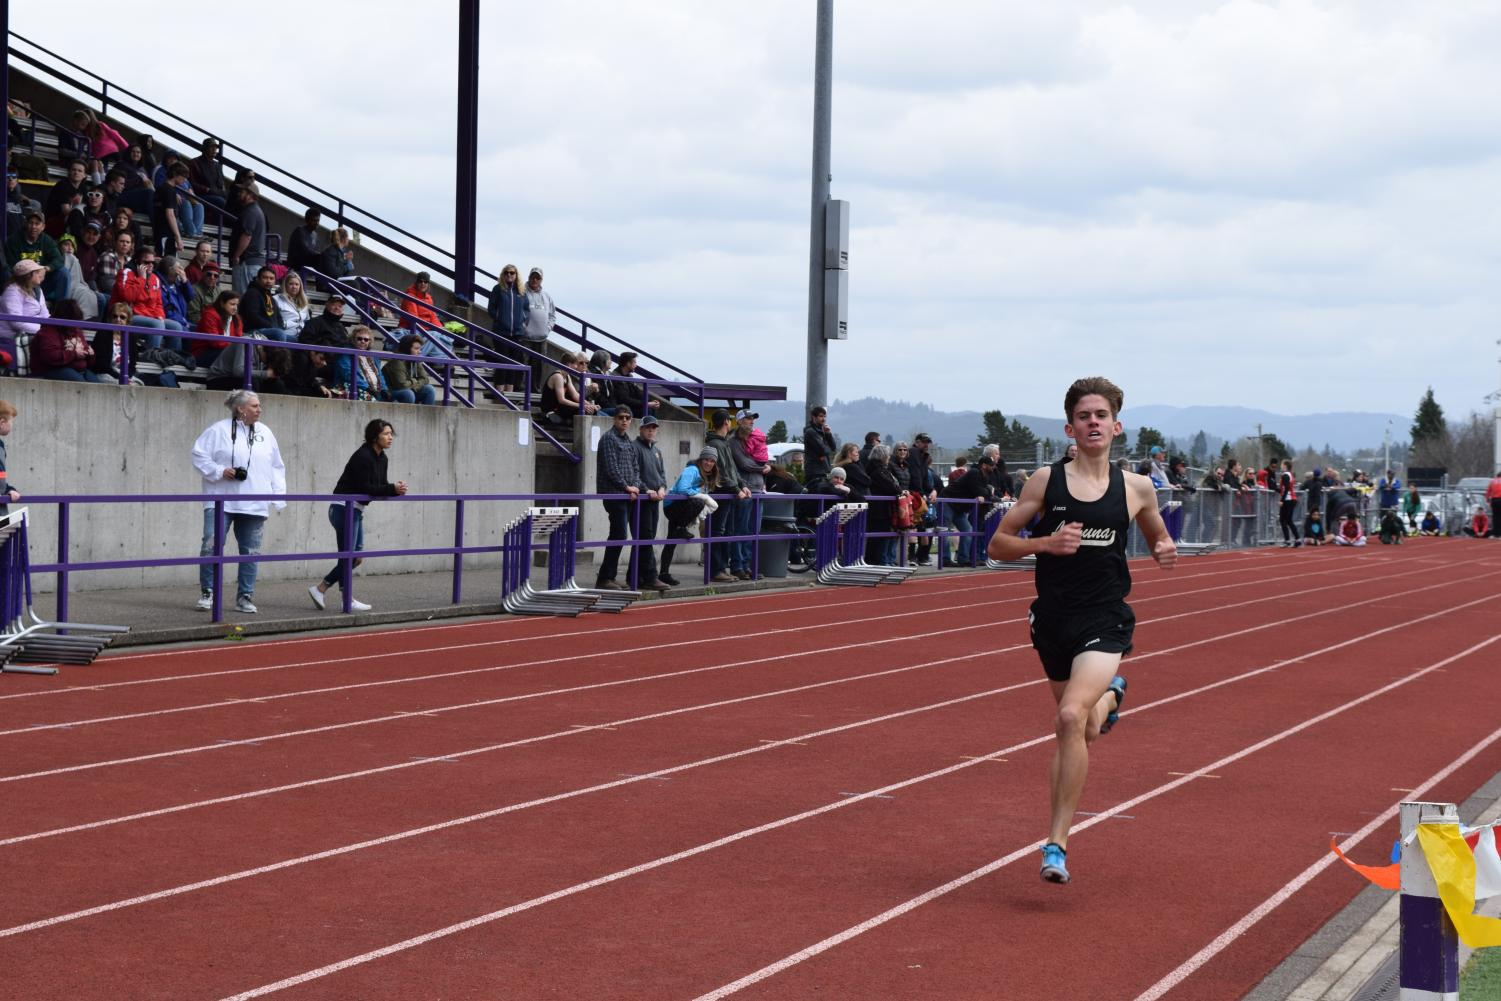 Laguna's Varsity runner Sebastian comes in first for Laguna, and second in the race, while the the team was away in Oregon.